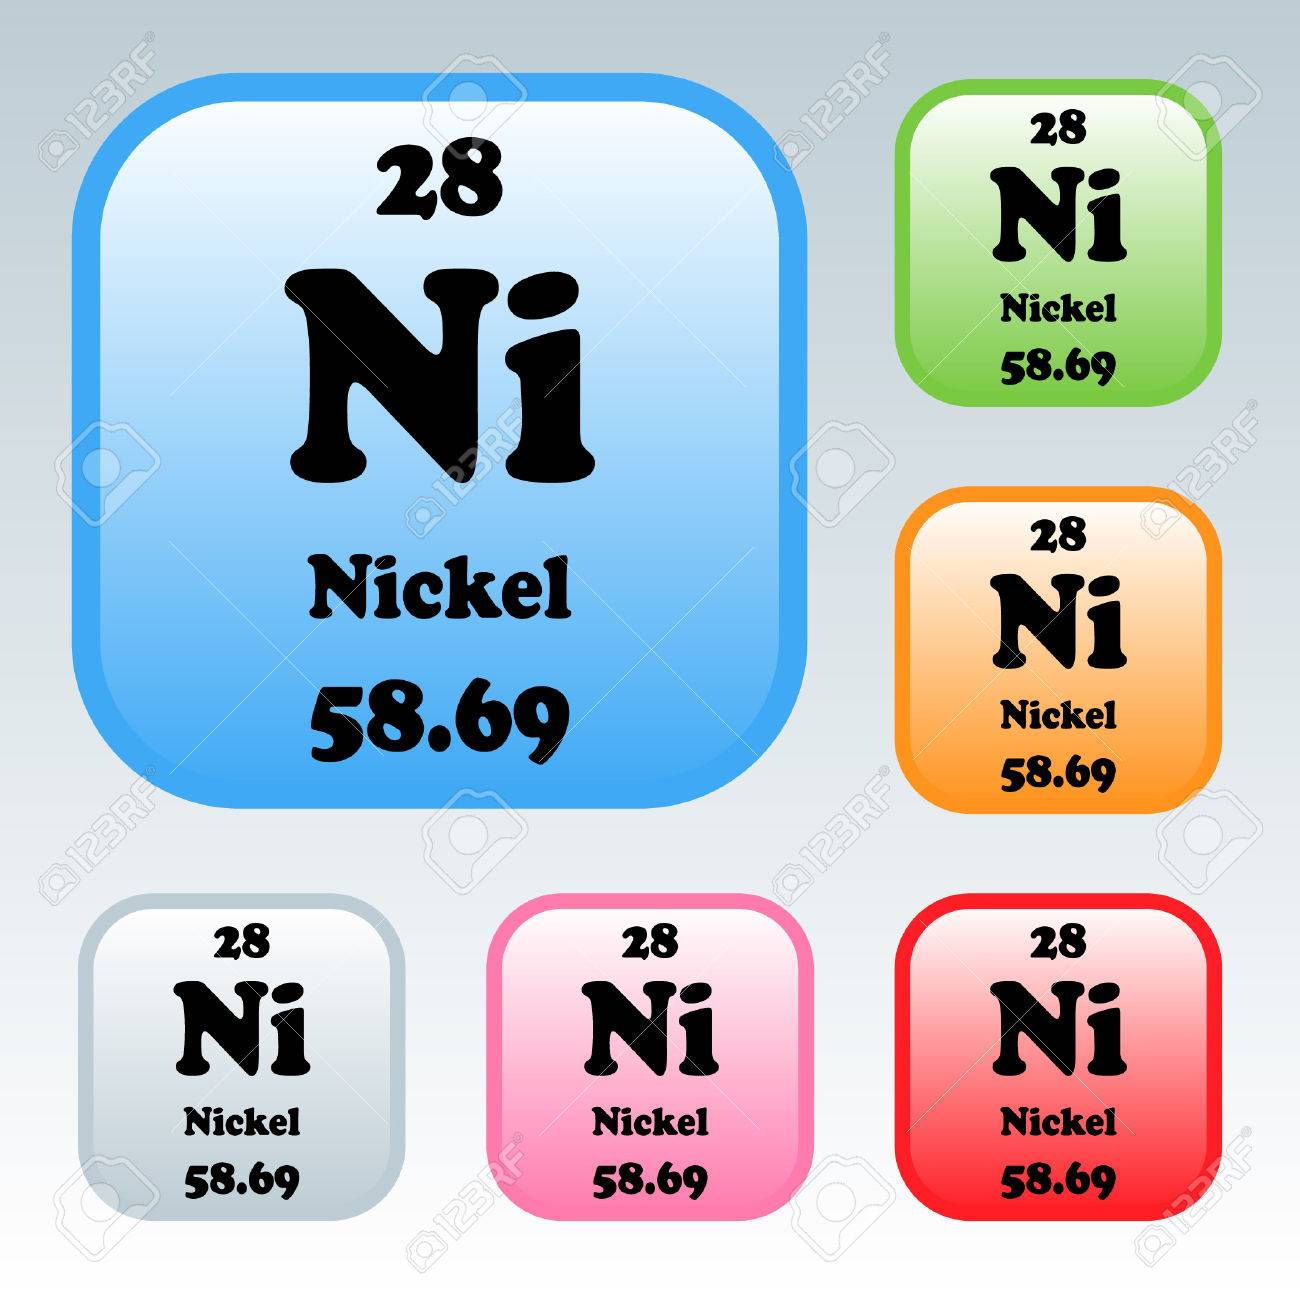 The Periodic Table Of The Elements Nickel Royalty Free Cliparts